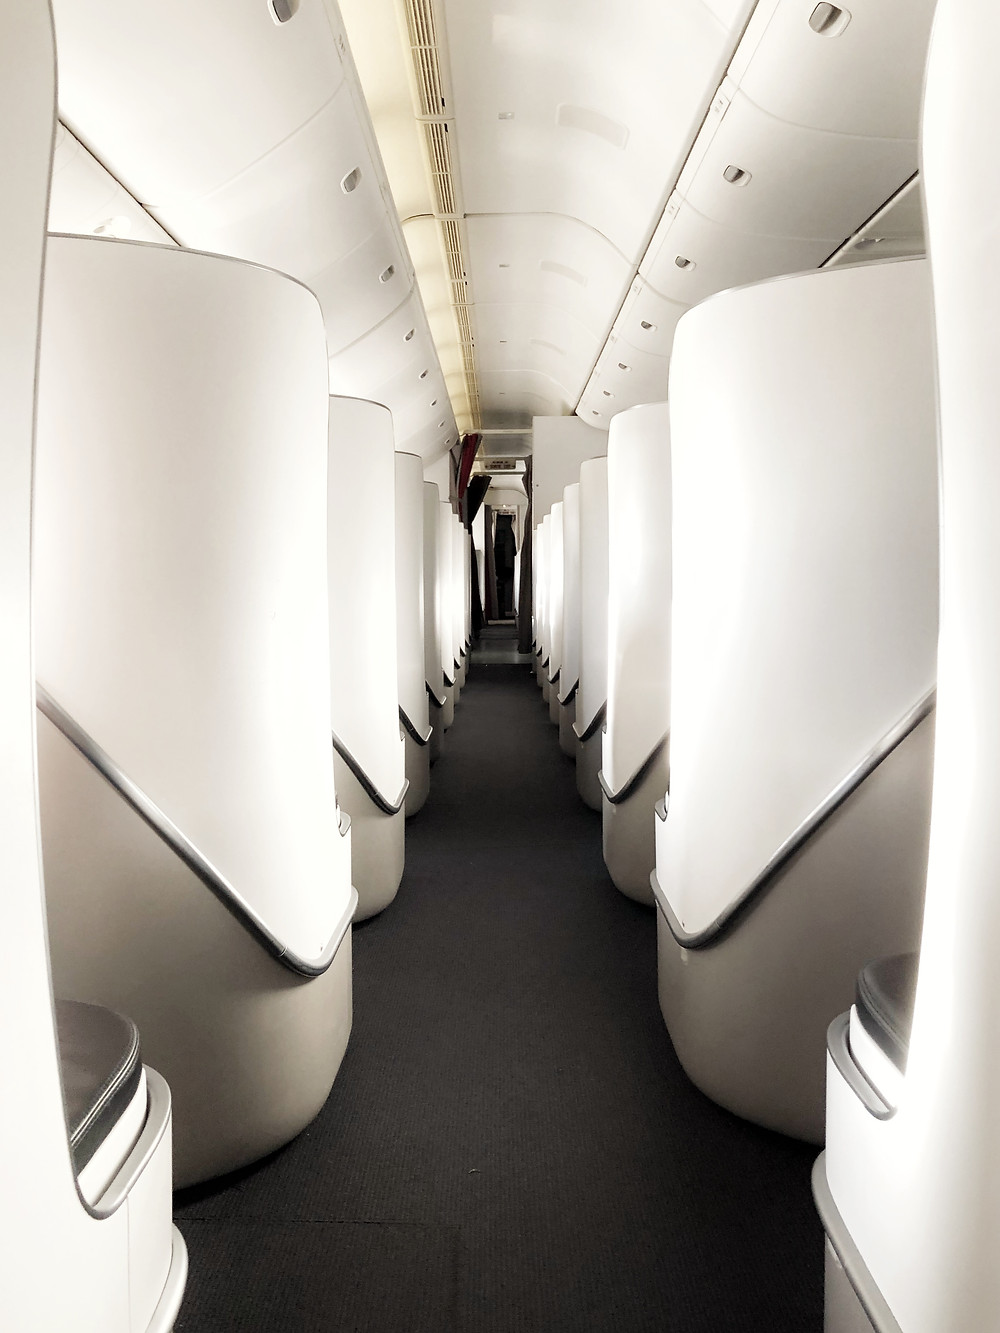 Air France Business Class, Second Section